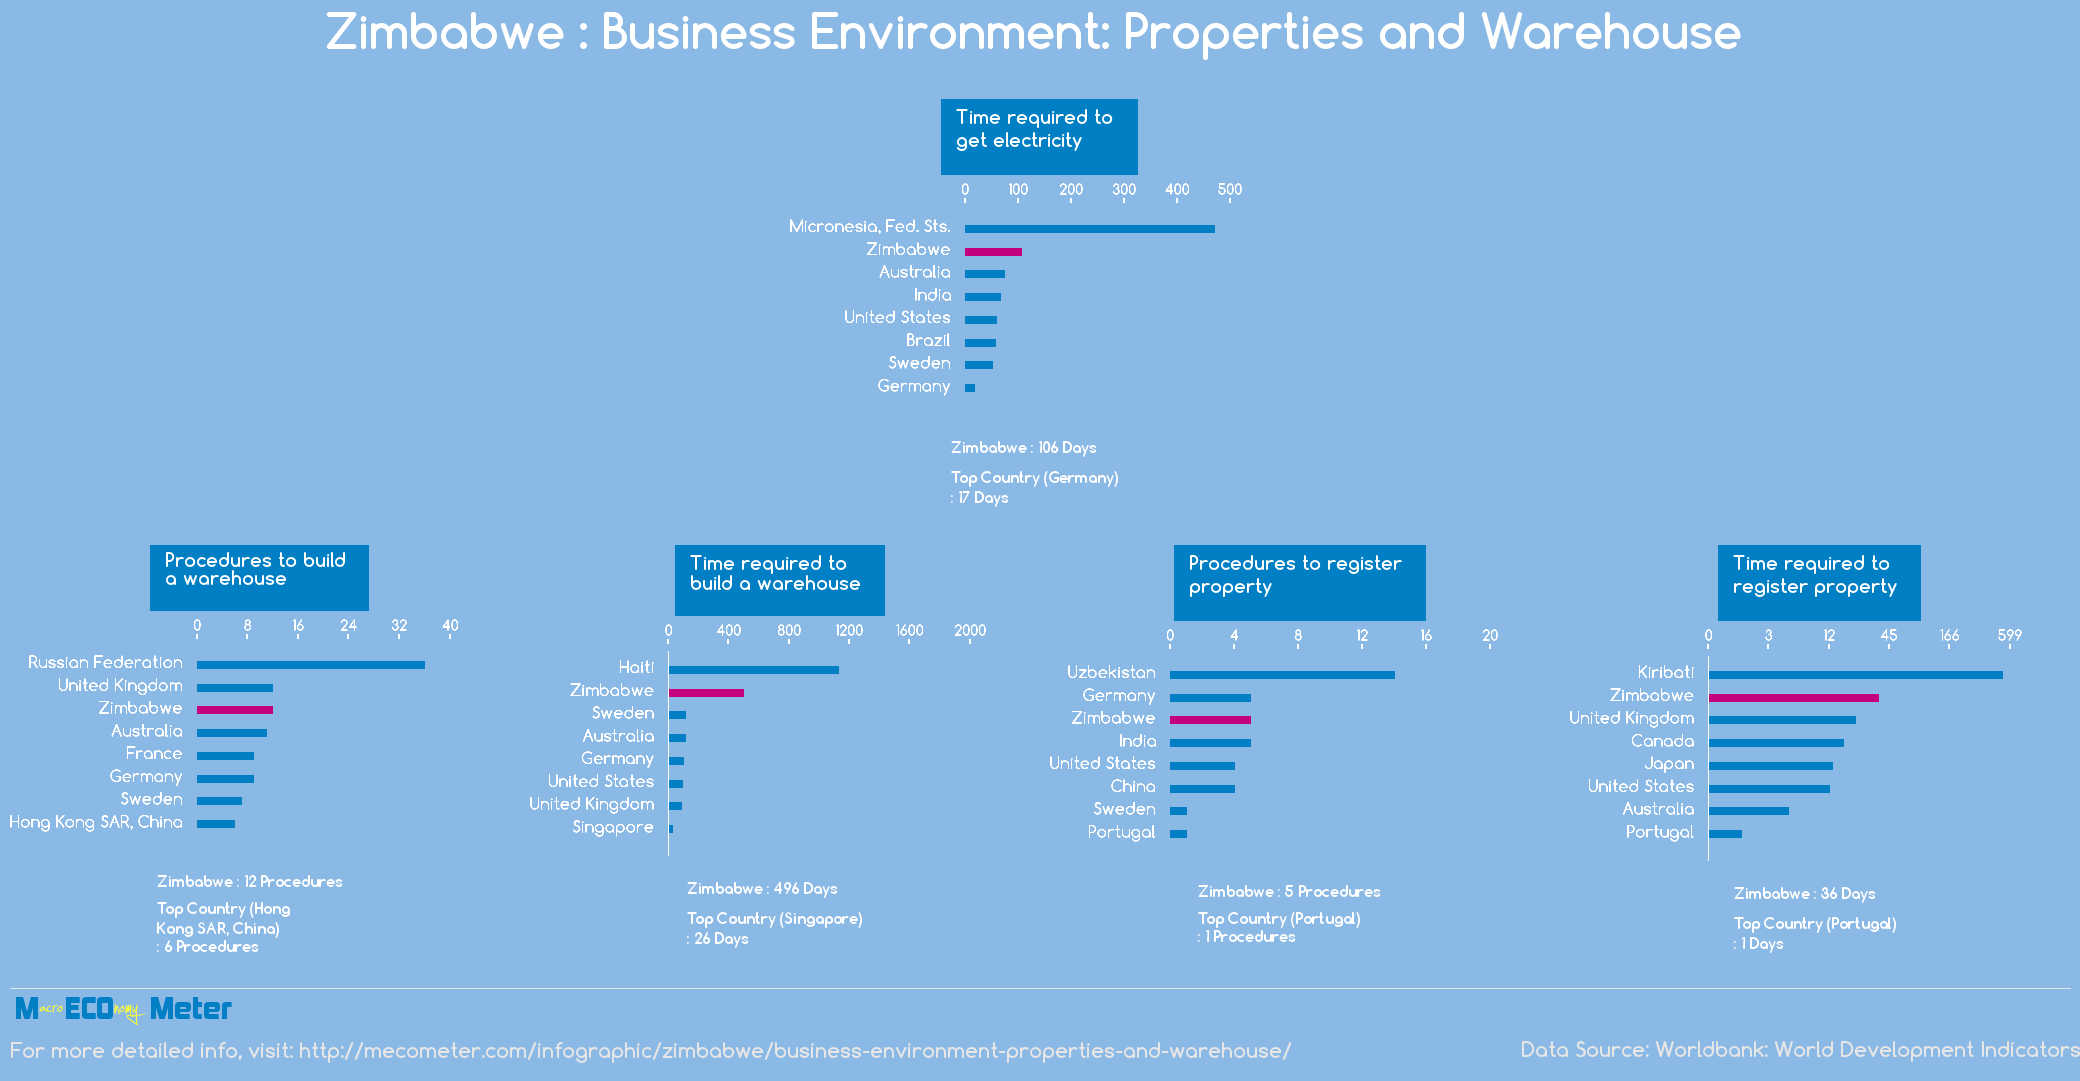 Zimbabwe : Business Environment: Properties and Warehouse